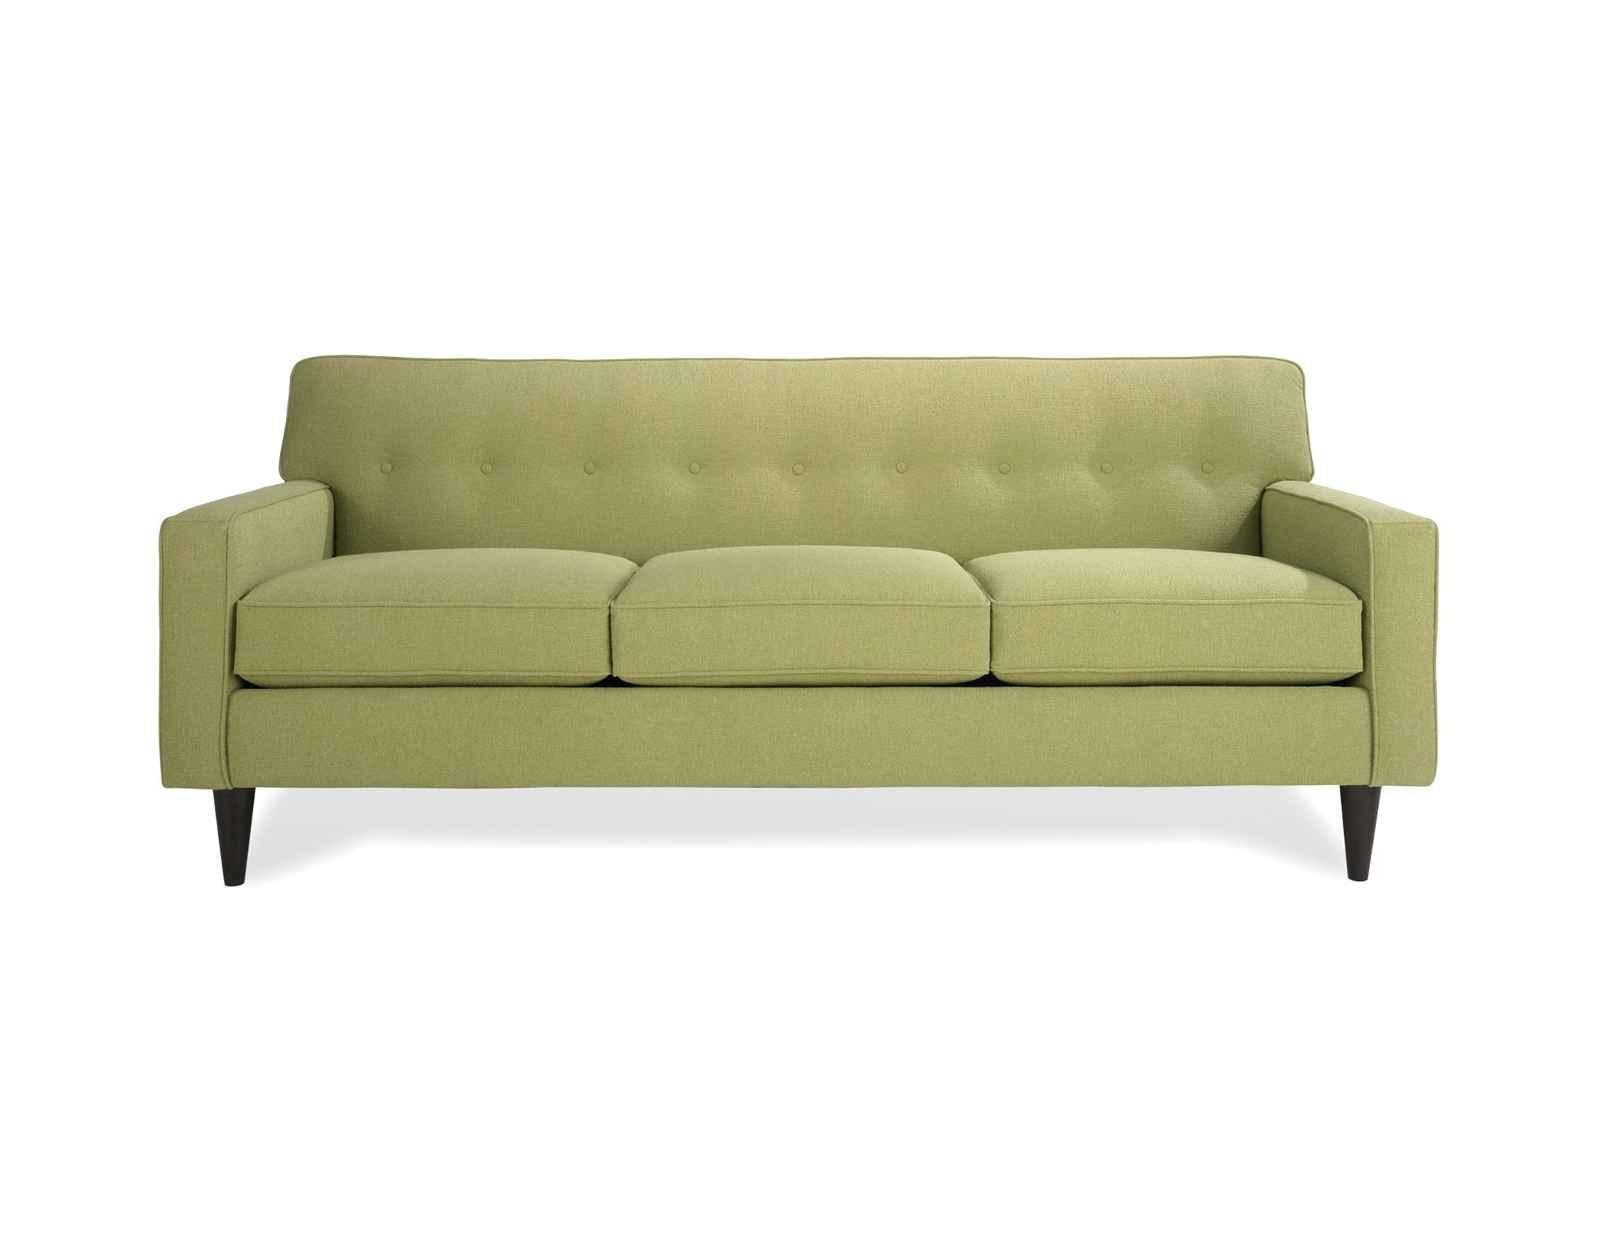 Cheap sofas and loveseats sets Discount designer sofas